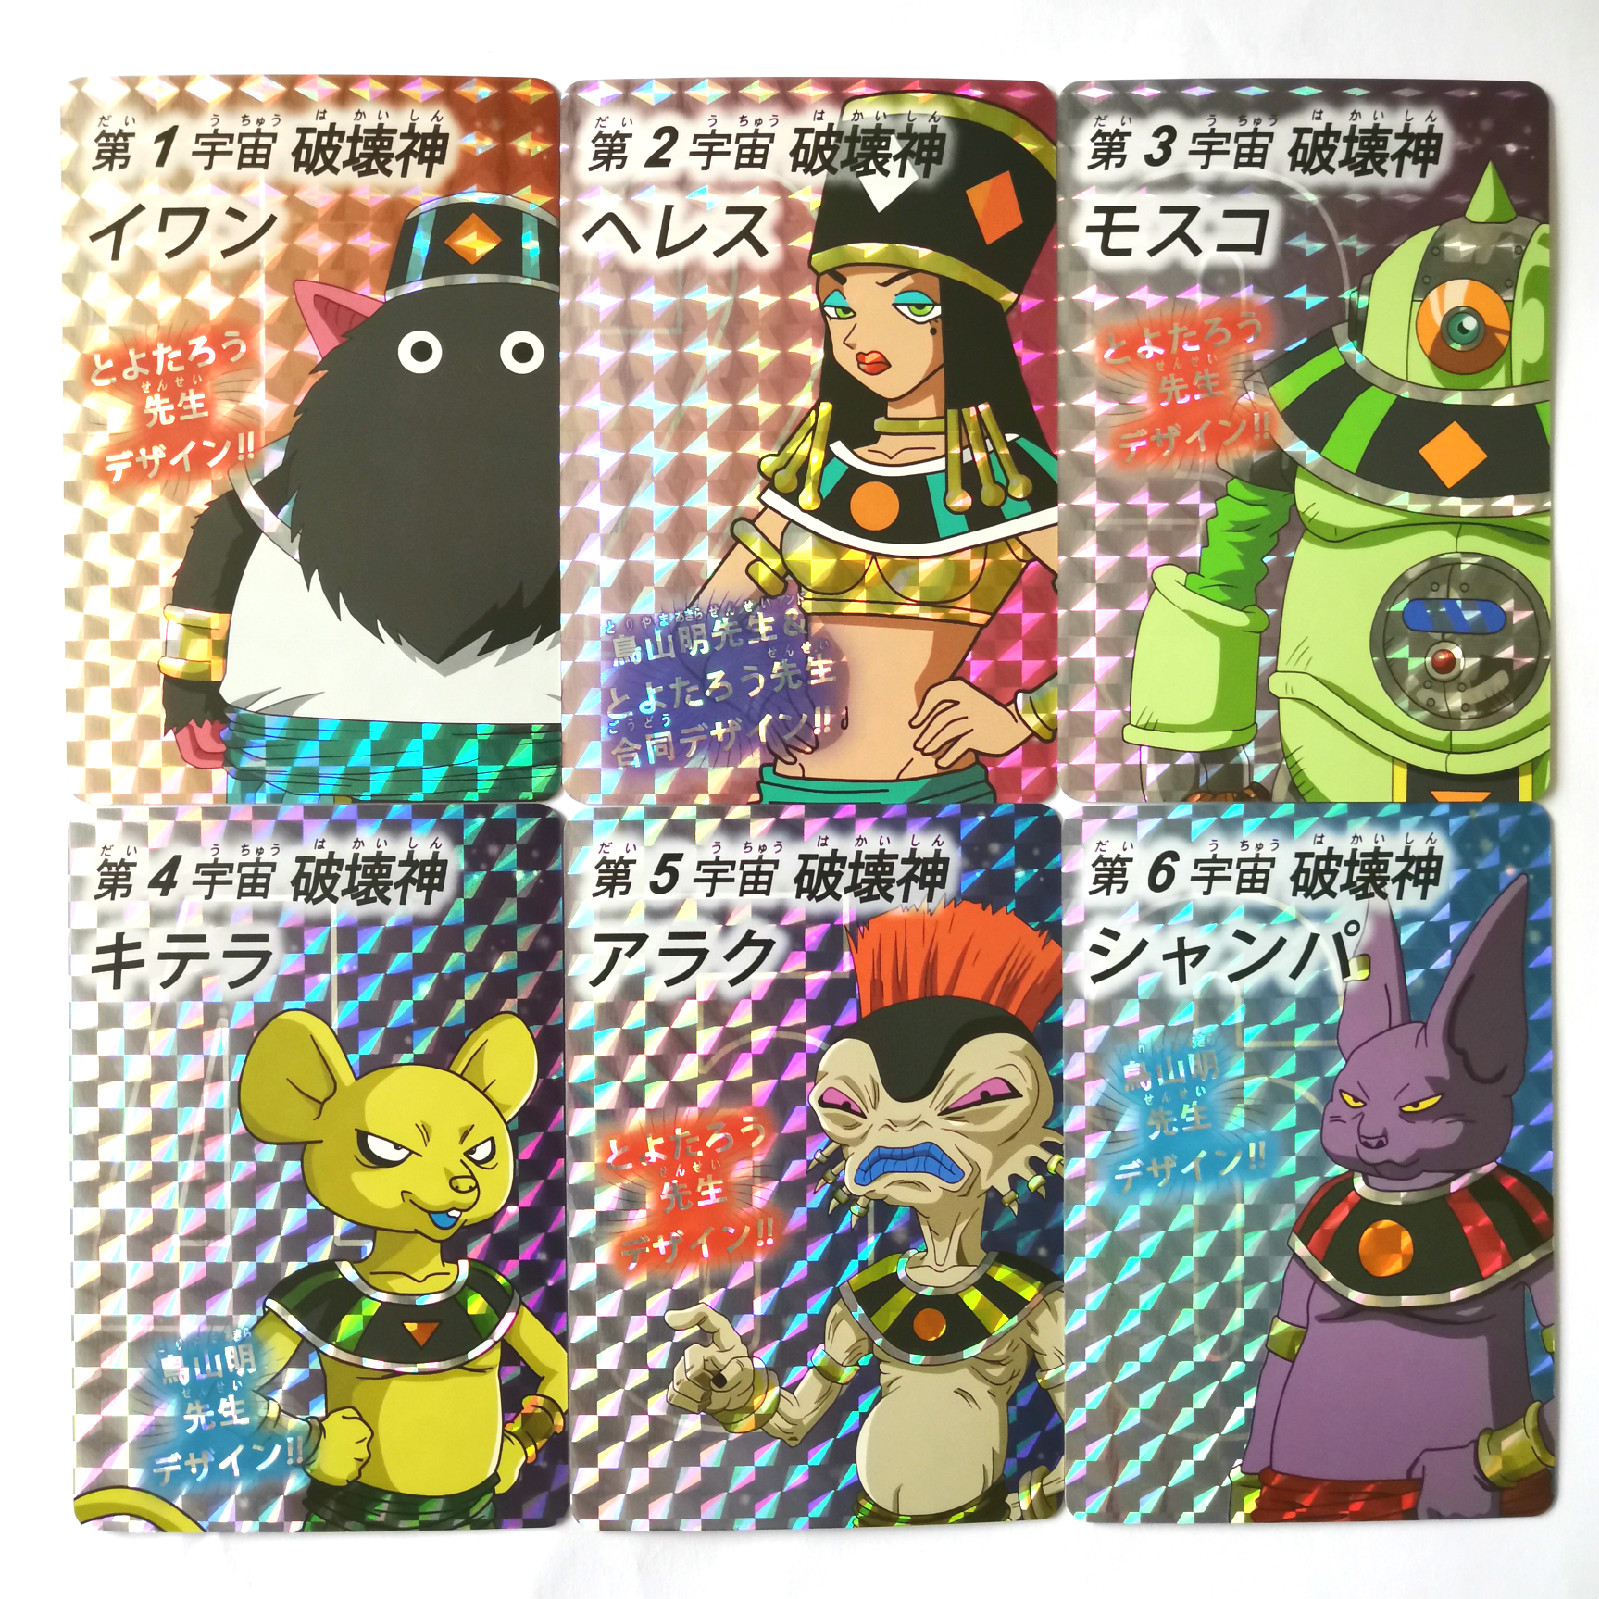 Dragon Ball Super Ultra Gods Of Destruction Instinct Limit Action Figures Commemorative Edition Game Flash Card Collection Cards